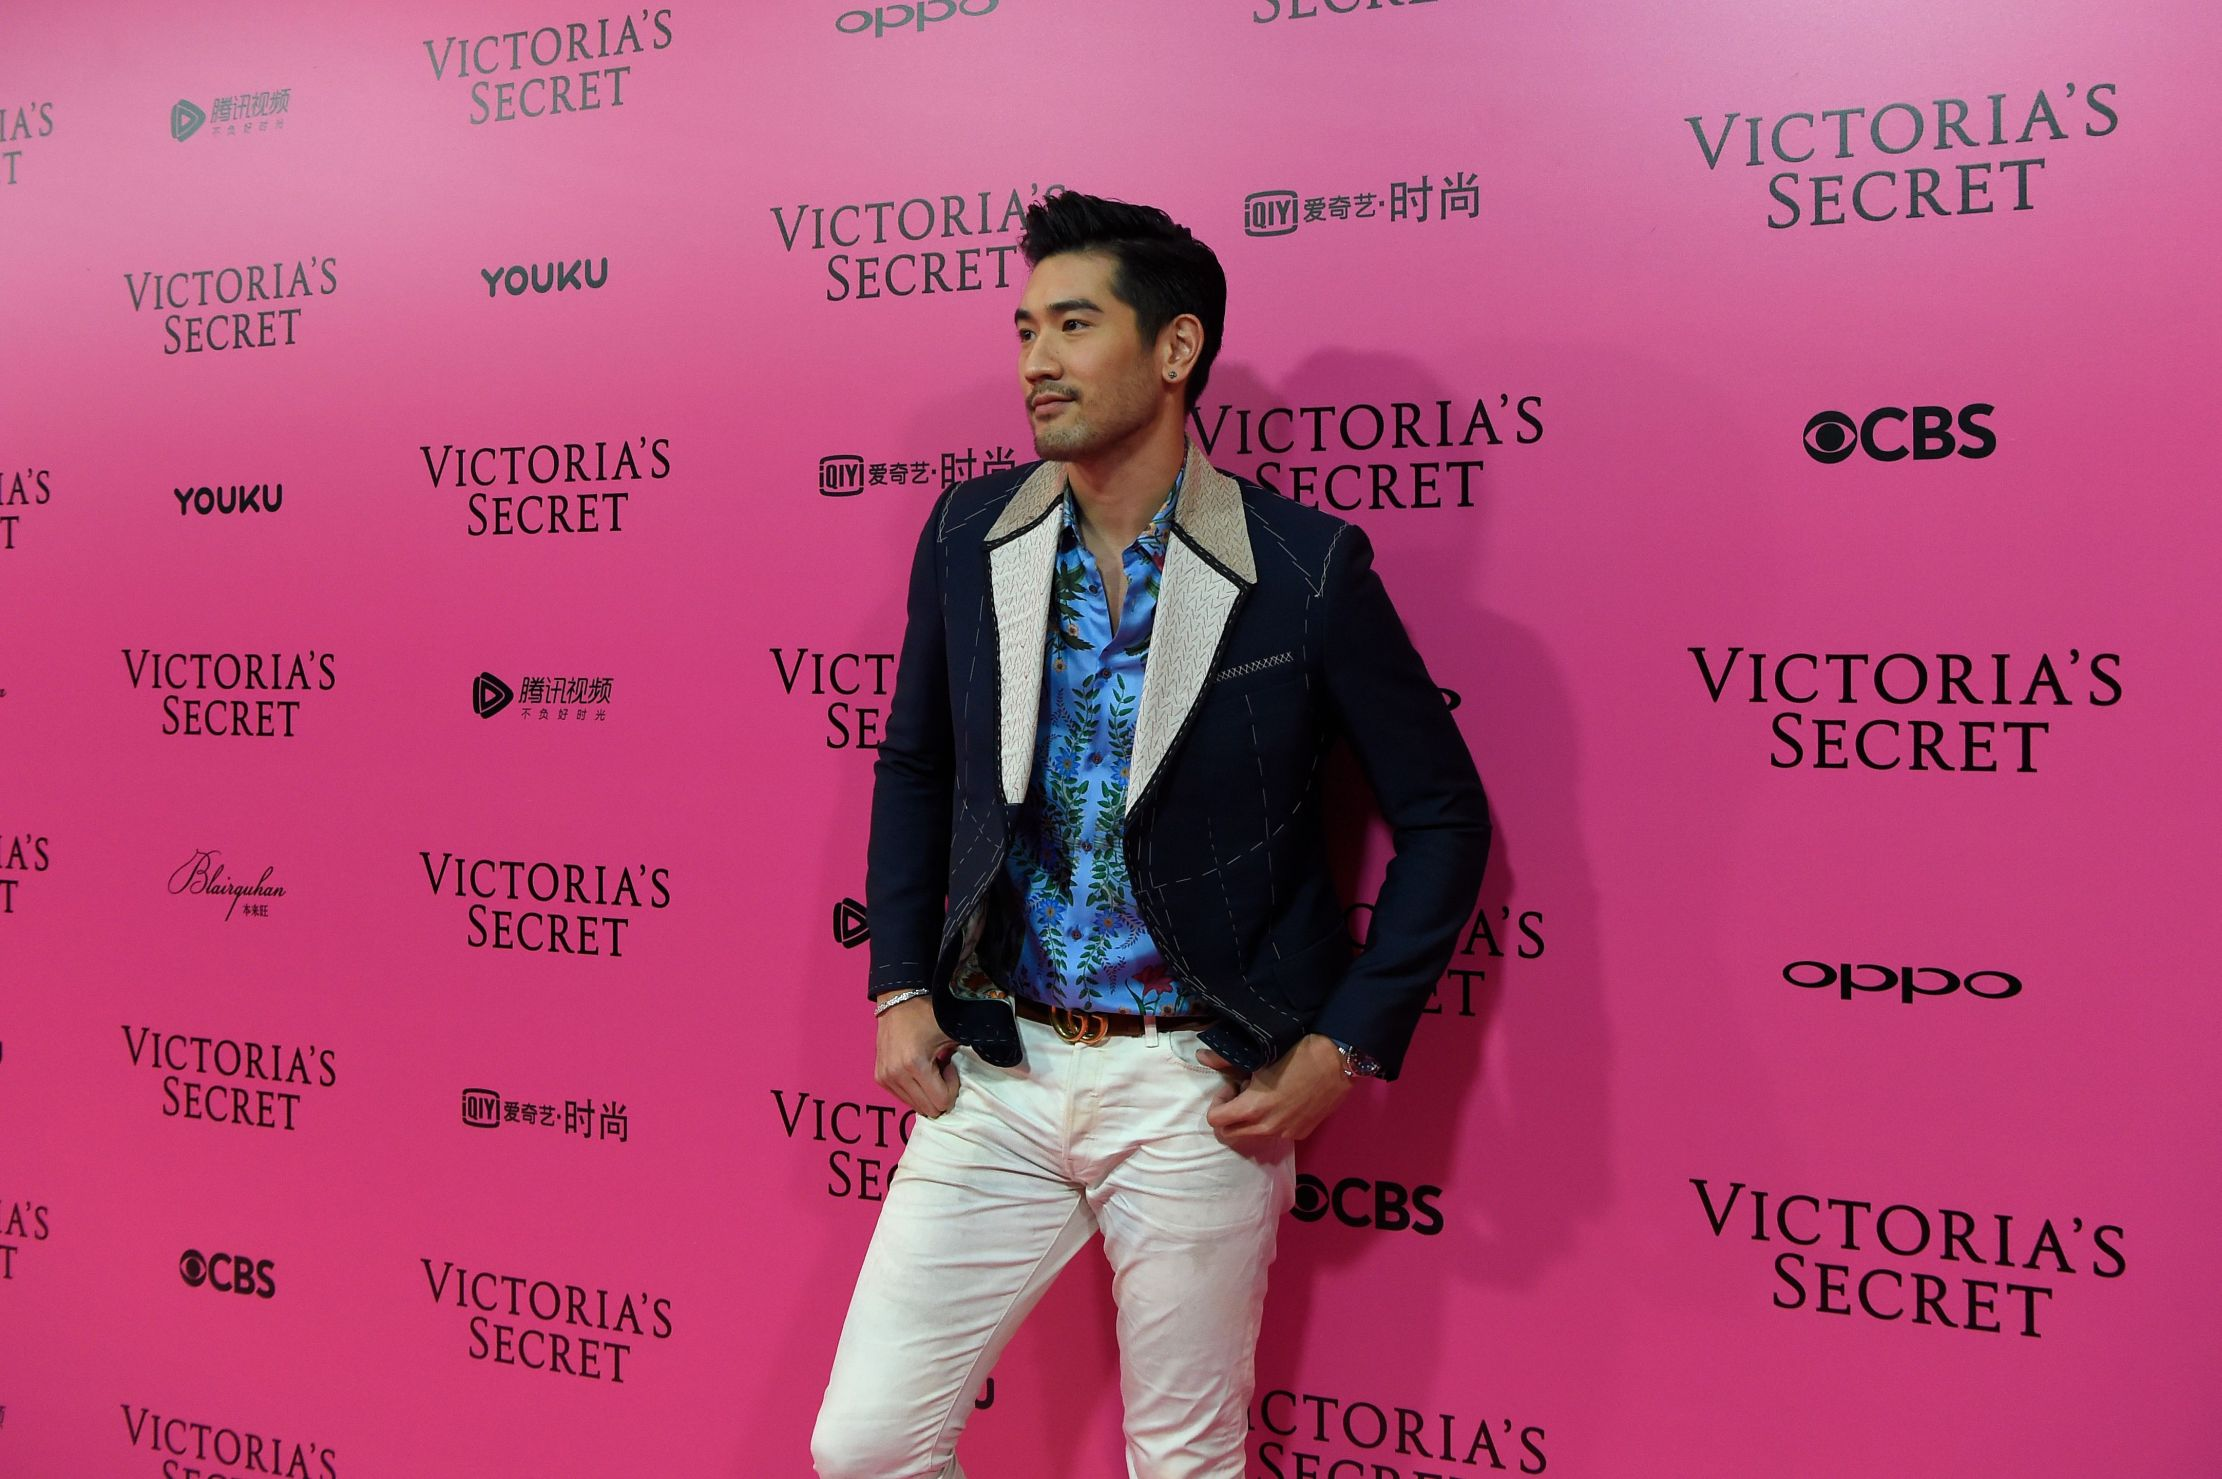 Actor Godfrey Gao, 35, Dies After Collapsing on TV Show Set